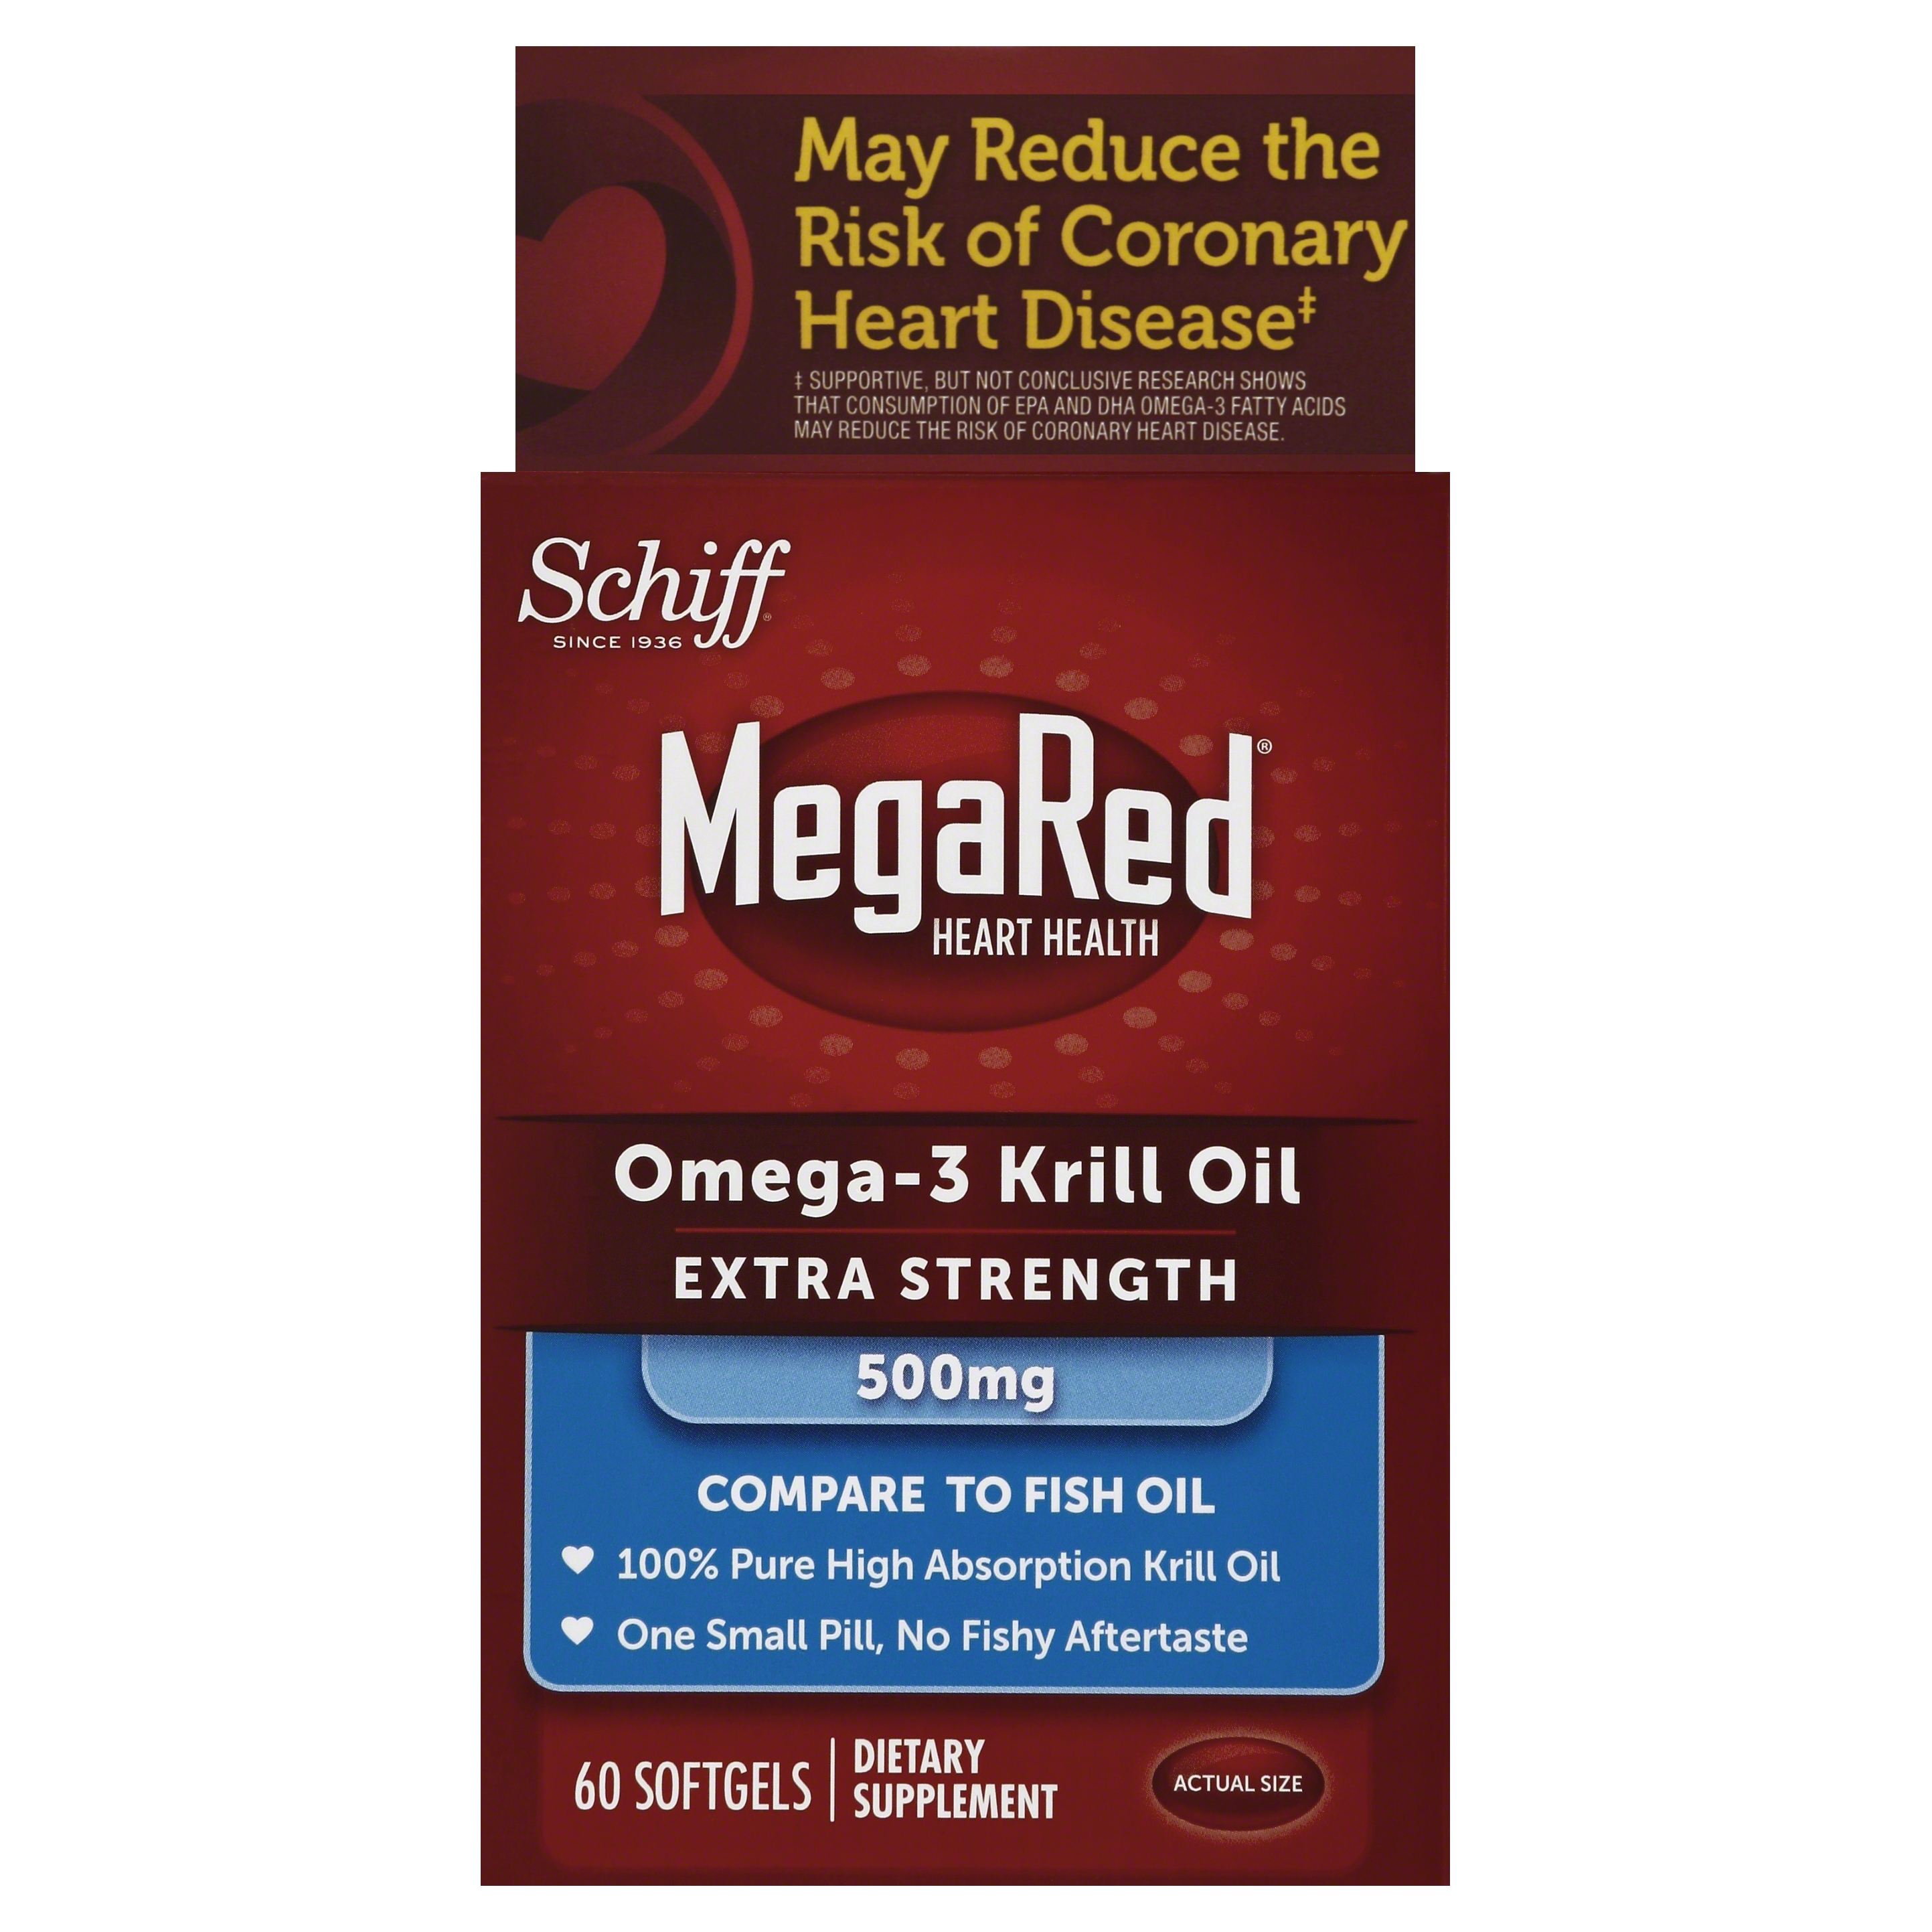 MegaRed Extra Strength Omega 3 Krill Oil 500mg Supplement, 60 Count